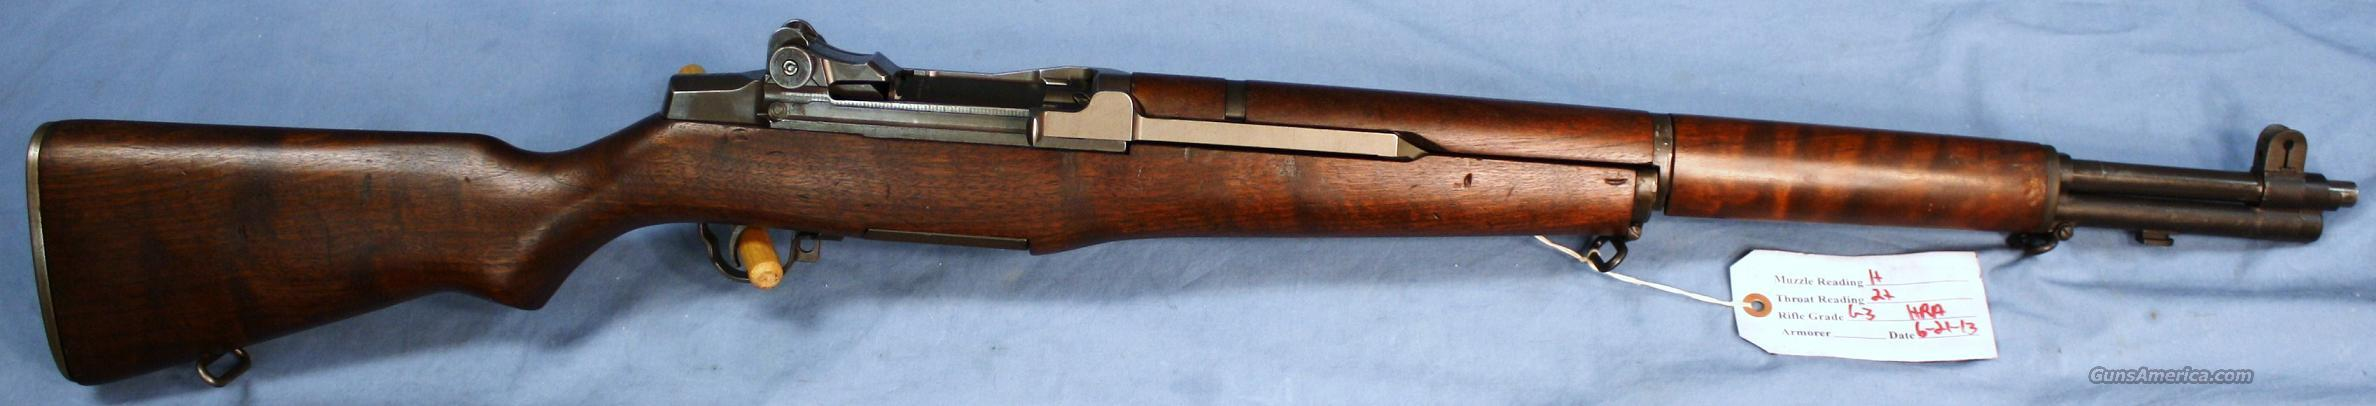 U.S. Army M1 Garand HRA Semi-Automatic Rifle .30-06 Barrel Date 1-55  Guns > Rifles > Military Misc. Rifles US > M1 Garand